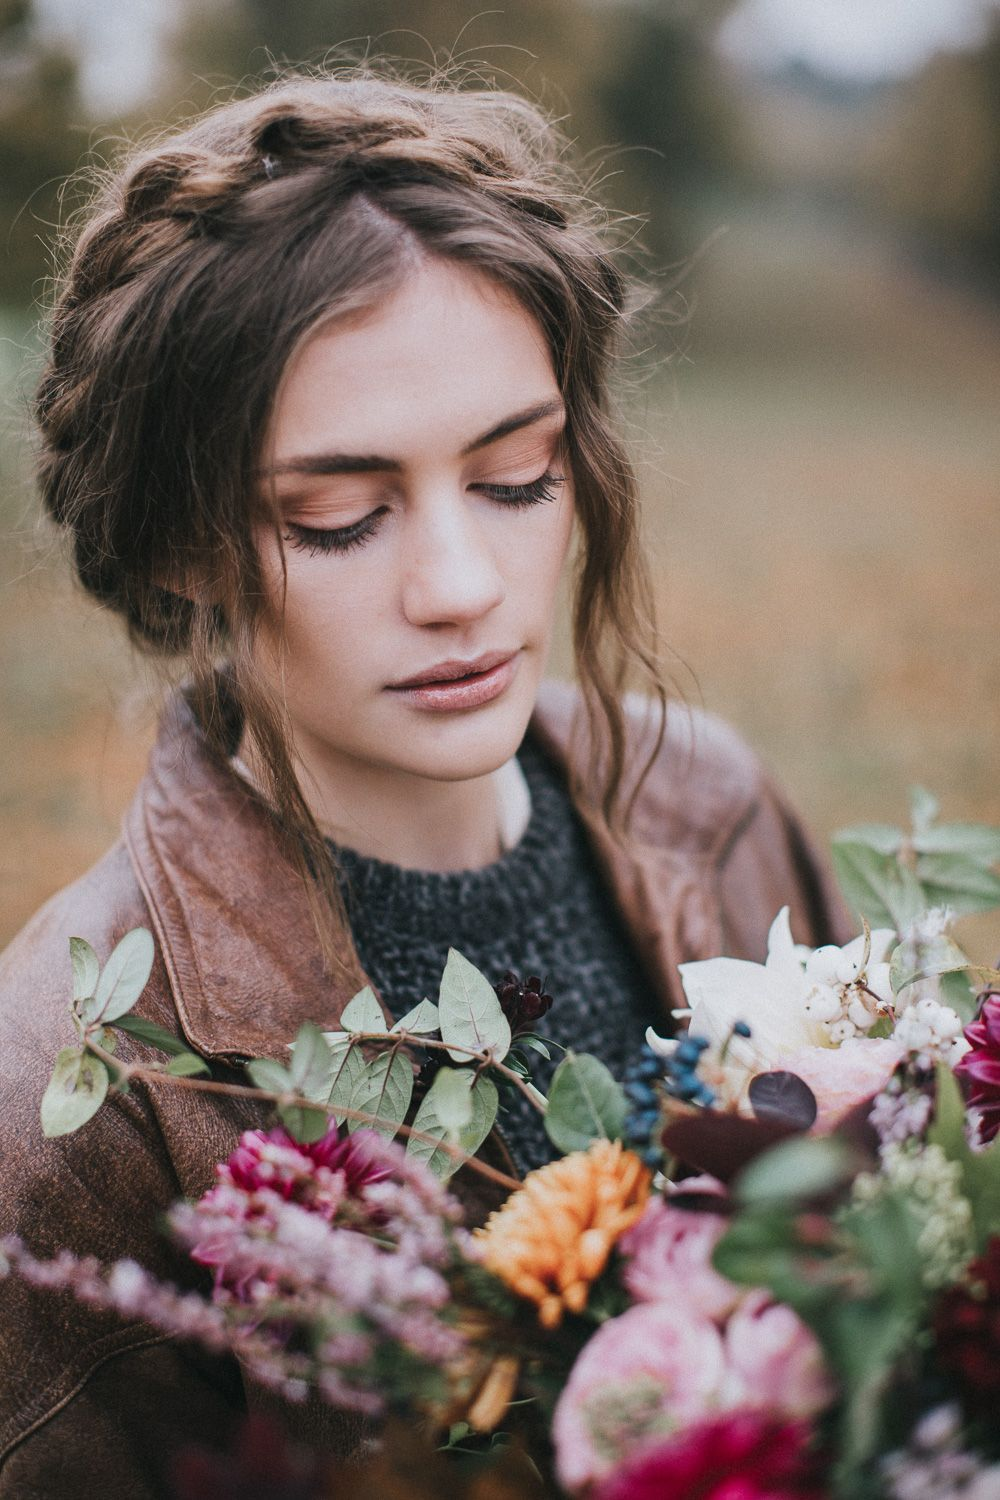 Stylish Autumnal Wedding Shoot From Top UK Wedding ...